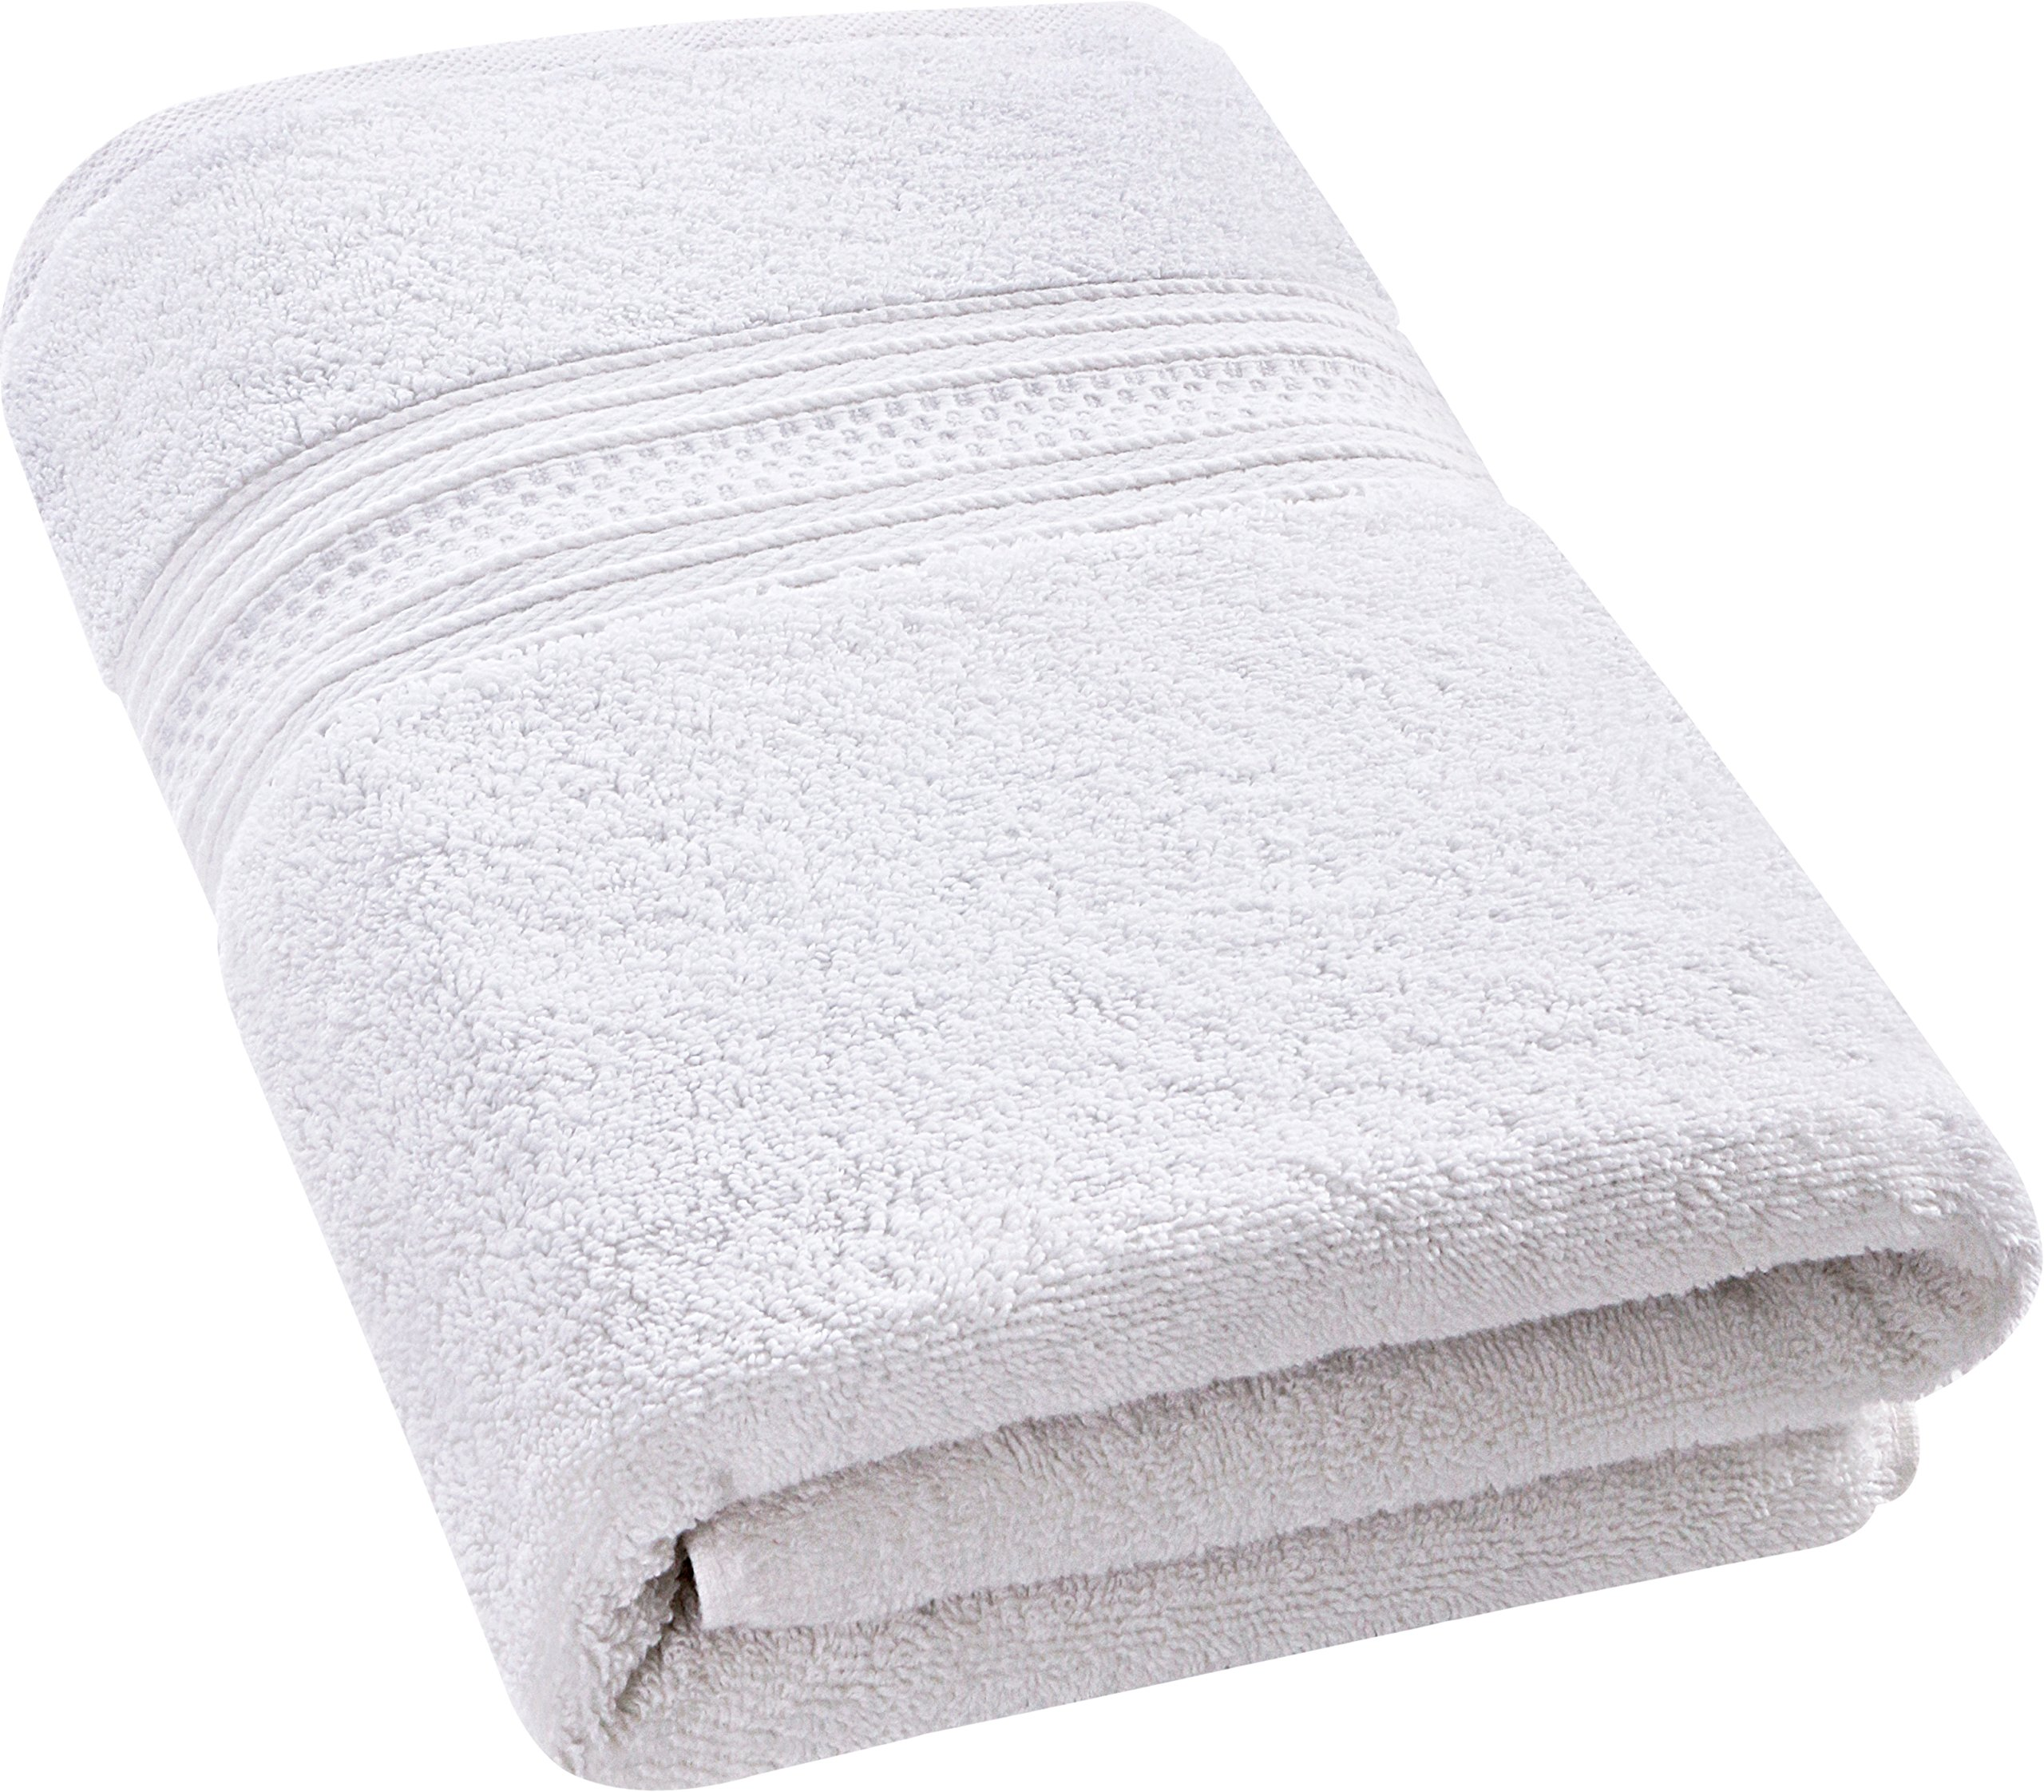 Utopia Towels 700 GSM Premium Cotton Extra Large Bath Towel (35 x 70 Inches) Soft Luxury Bath Sheet - White